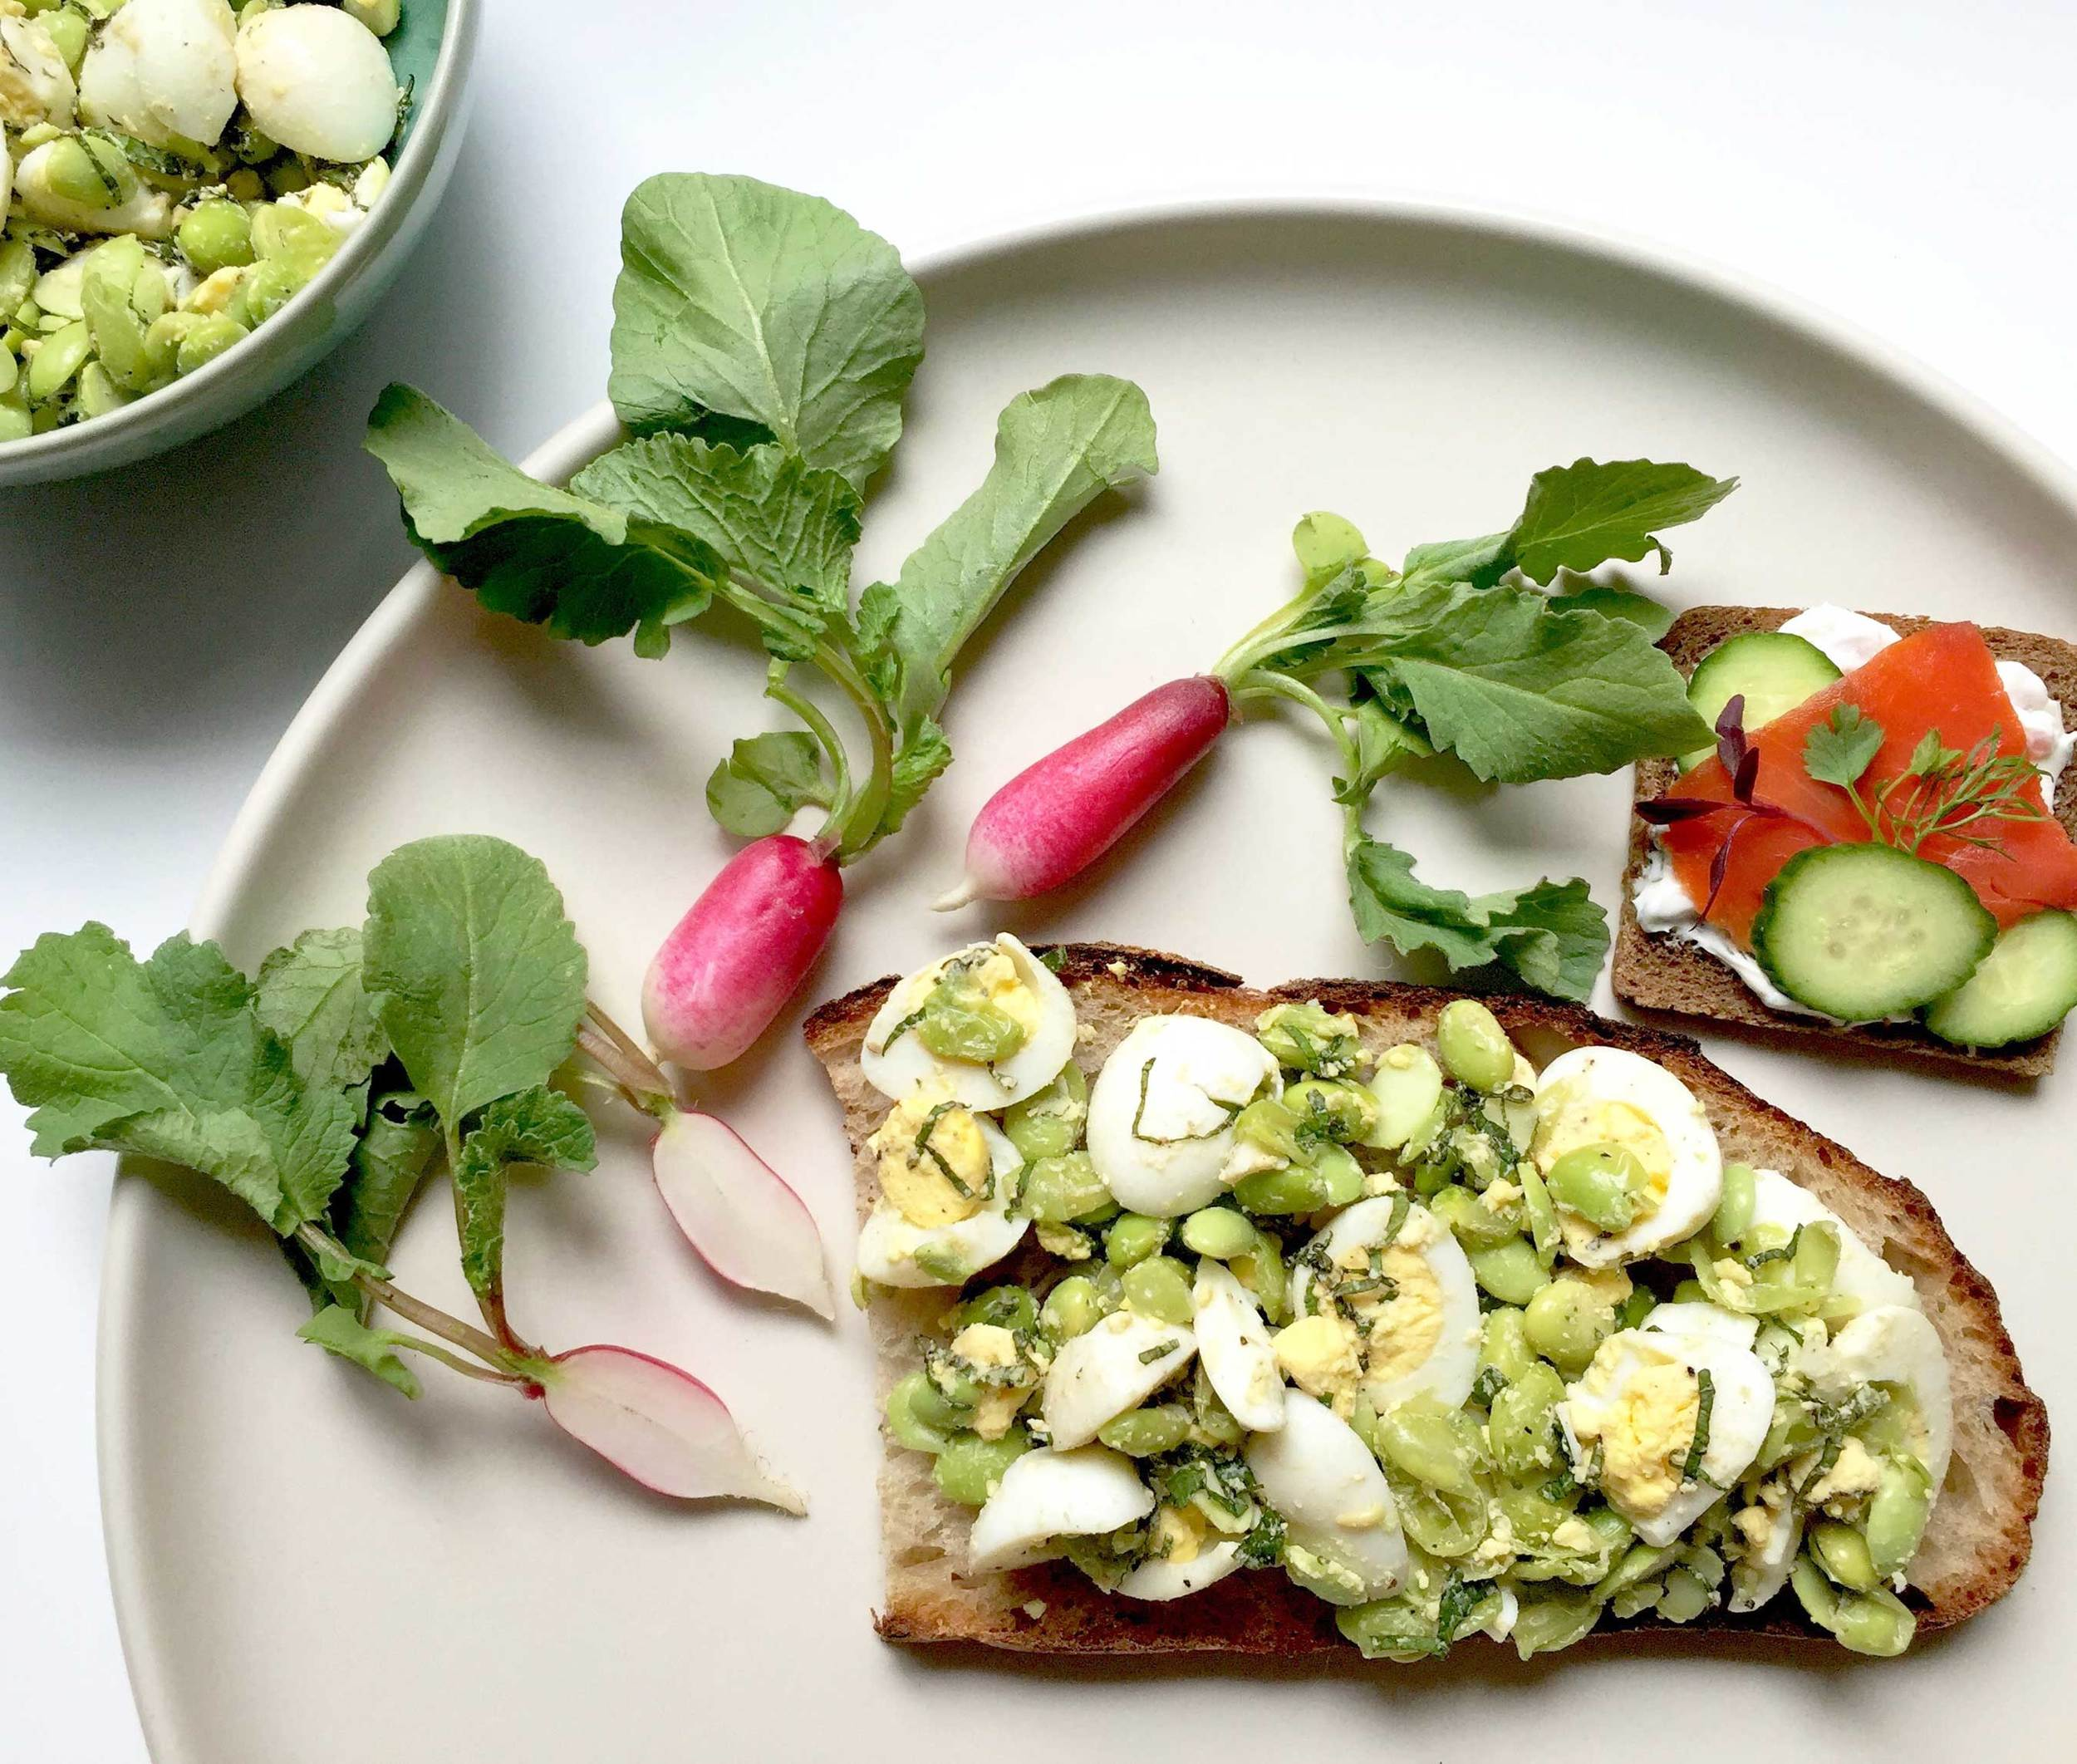 Tartines, freshen up your sandwiches, recipe by Thread & Whisk